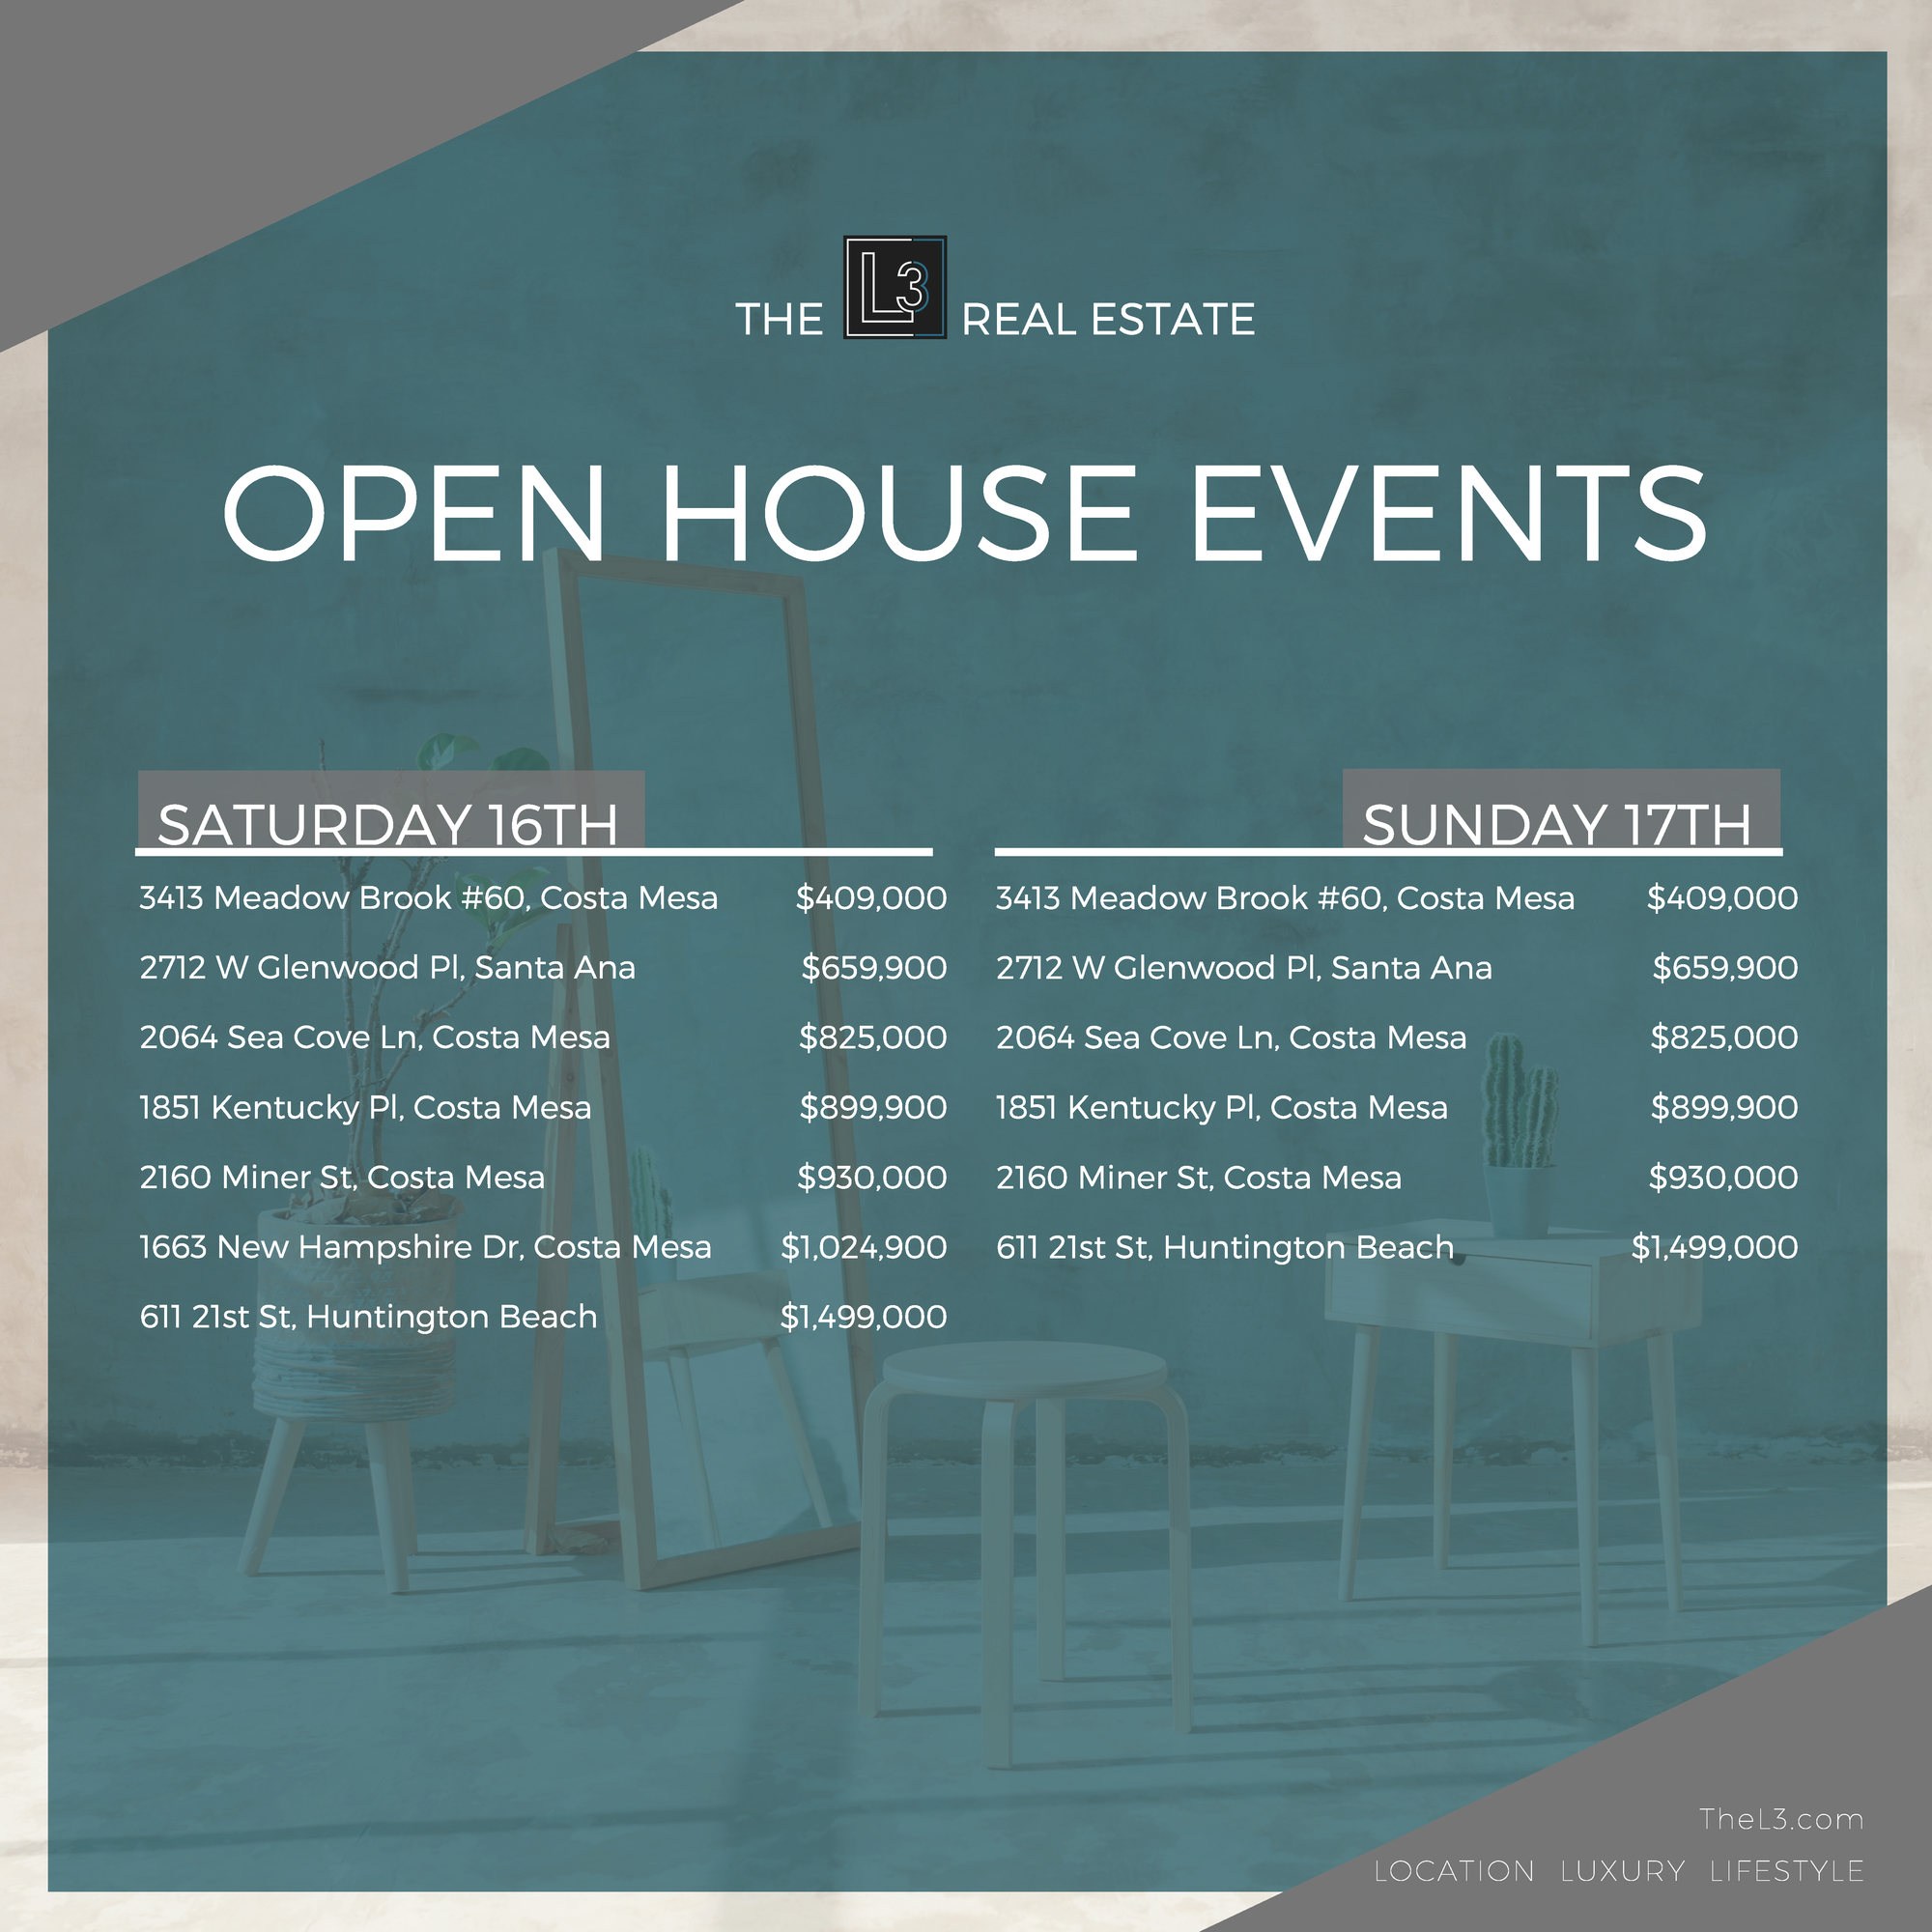 The L3 Real Estate Open House Events